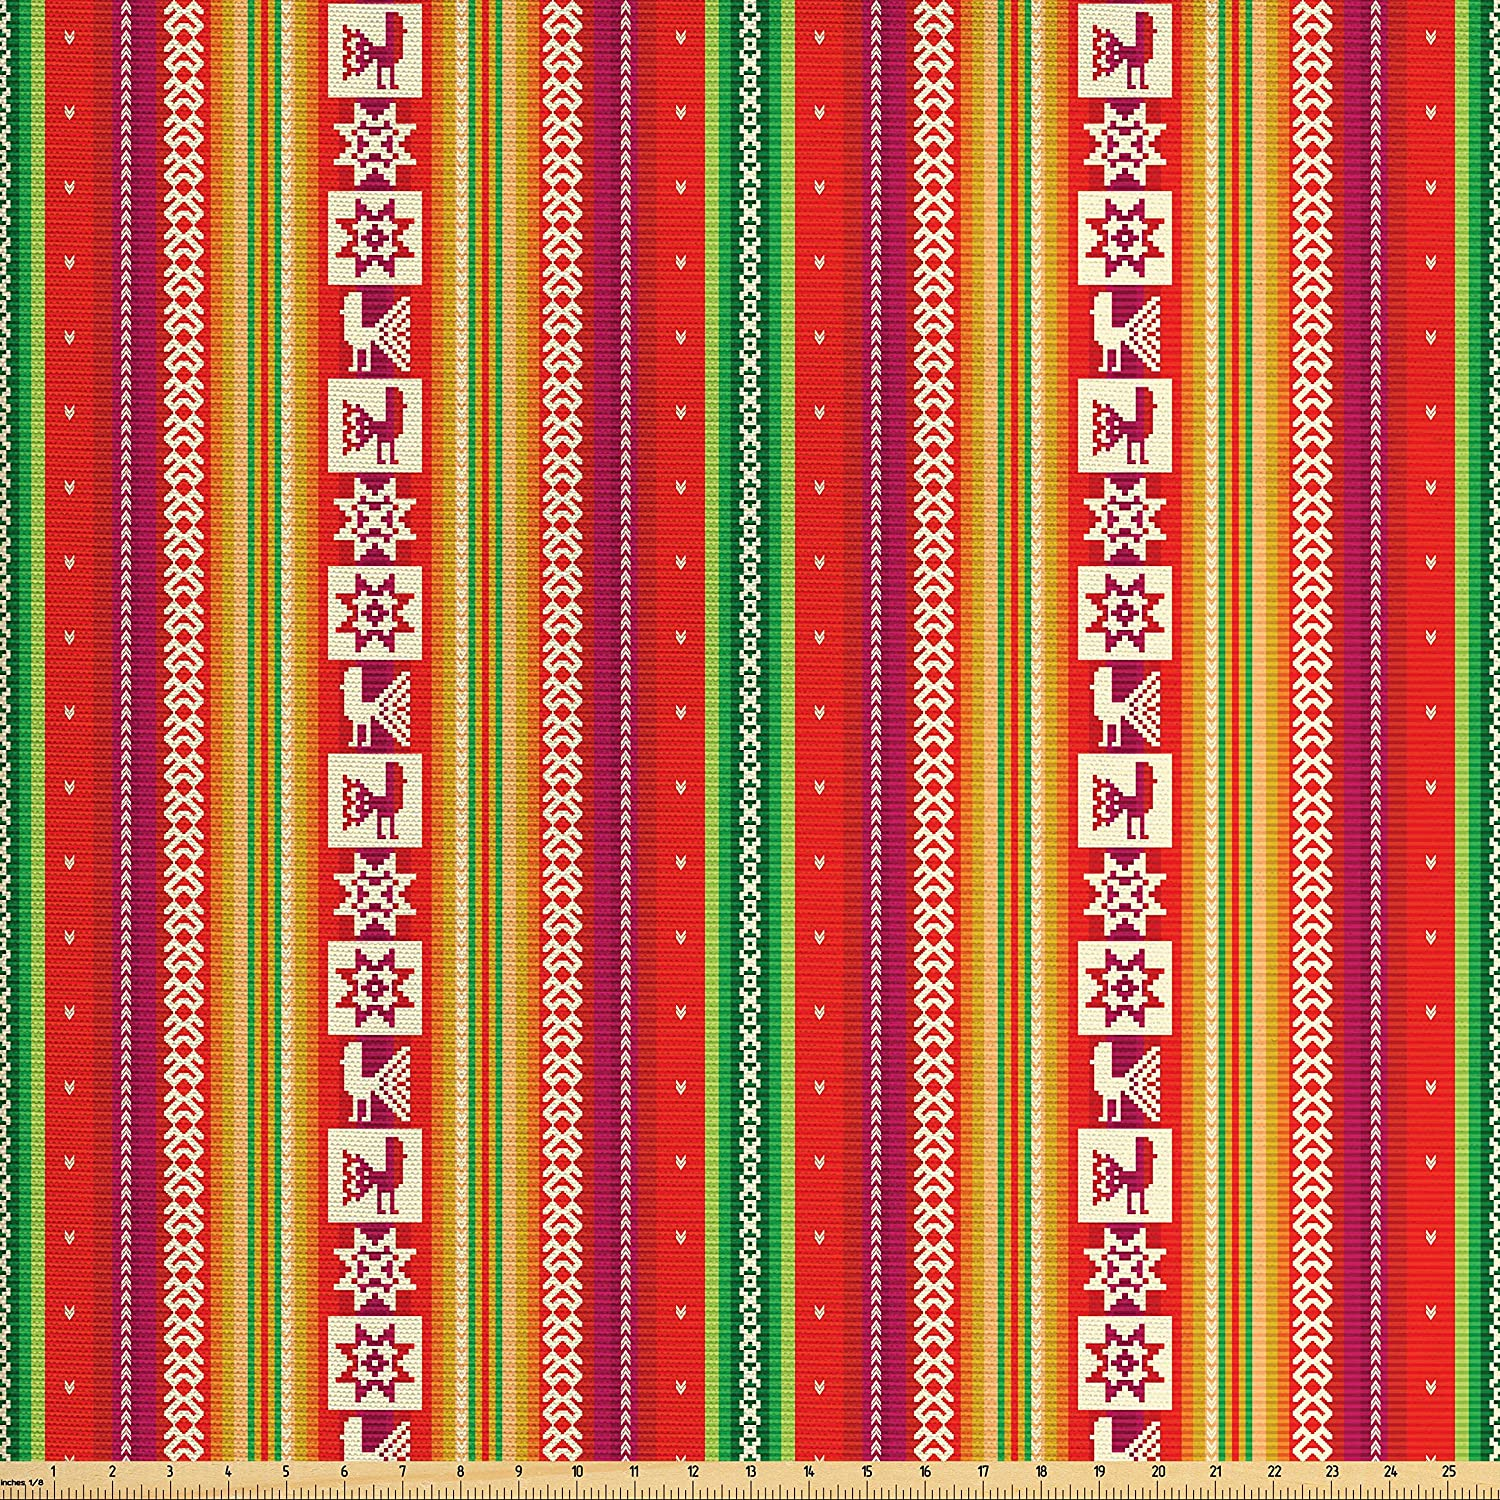 Lunarable Tribal Fabric by The Yard, South American Colorful Pattern with Birds Bolivian Traditional Borders, Decorative Fabric for Upholstery and Home Accents, Multicolor